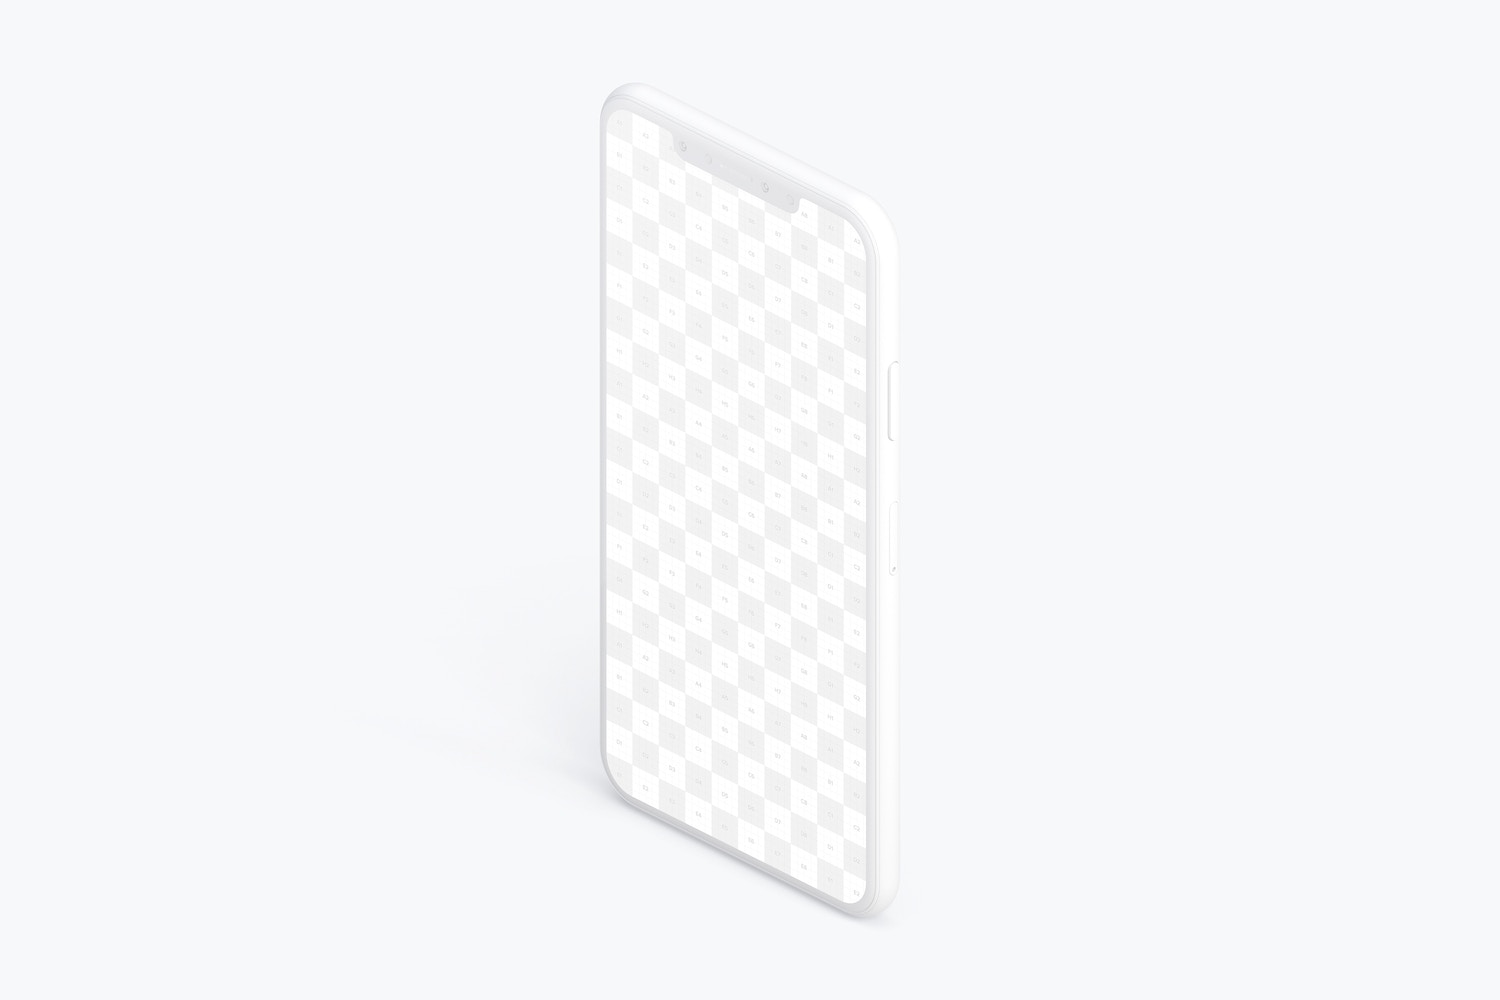 Isometric Clay iPhone XS Max Mockup, Left View 02